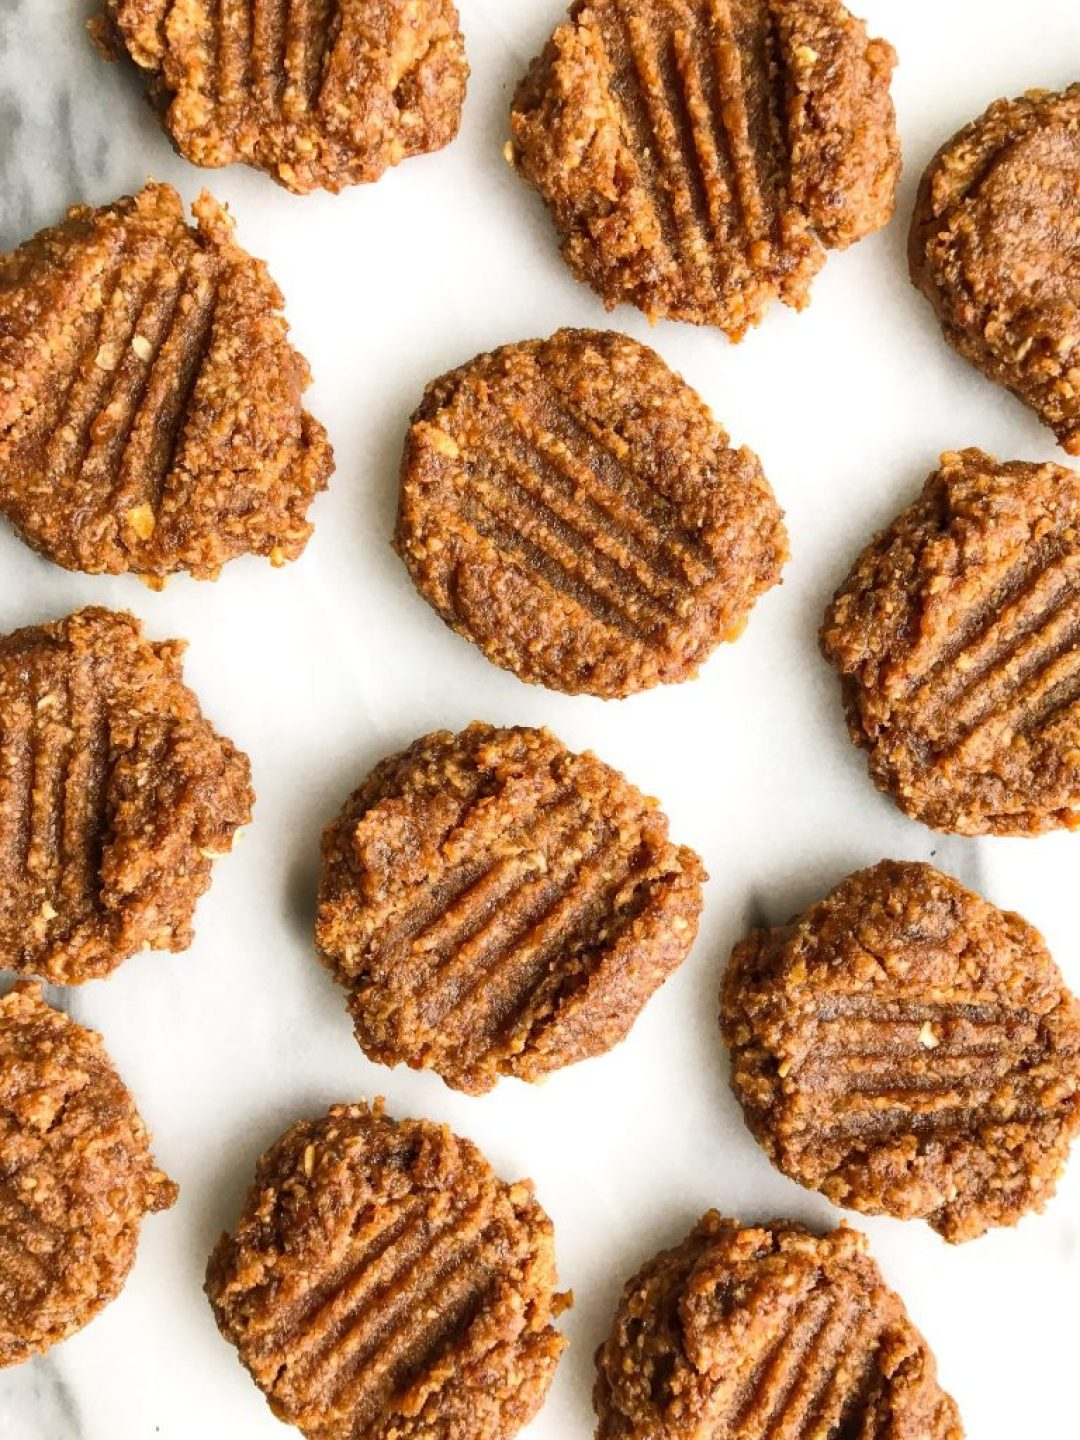 10-minute Vegan Almond Butter Cookies that are healthy, gluten-free and so easy to make!